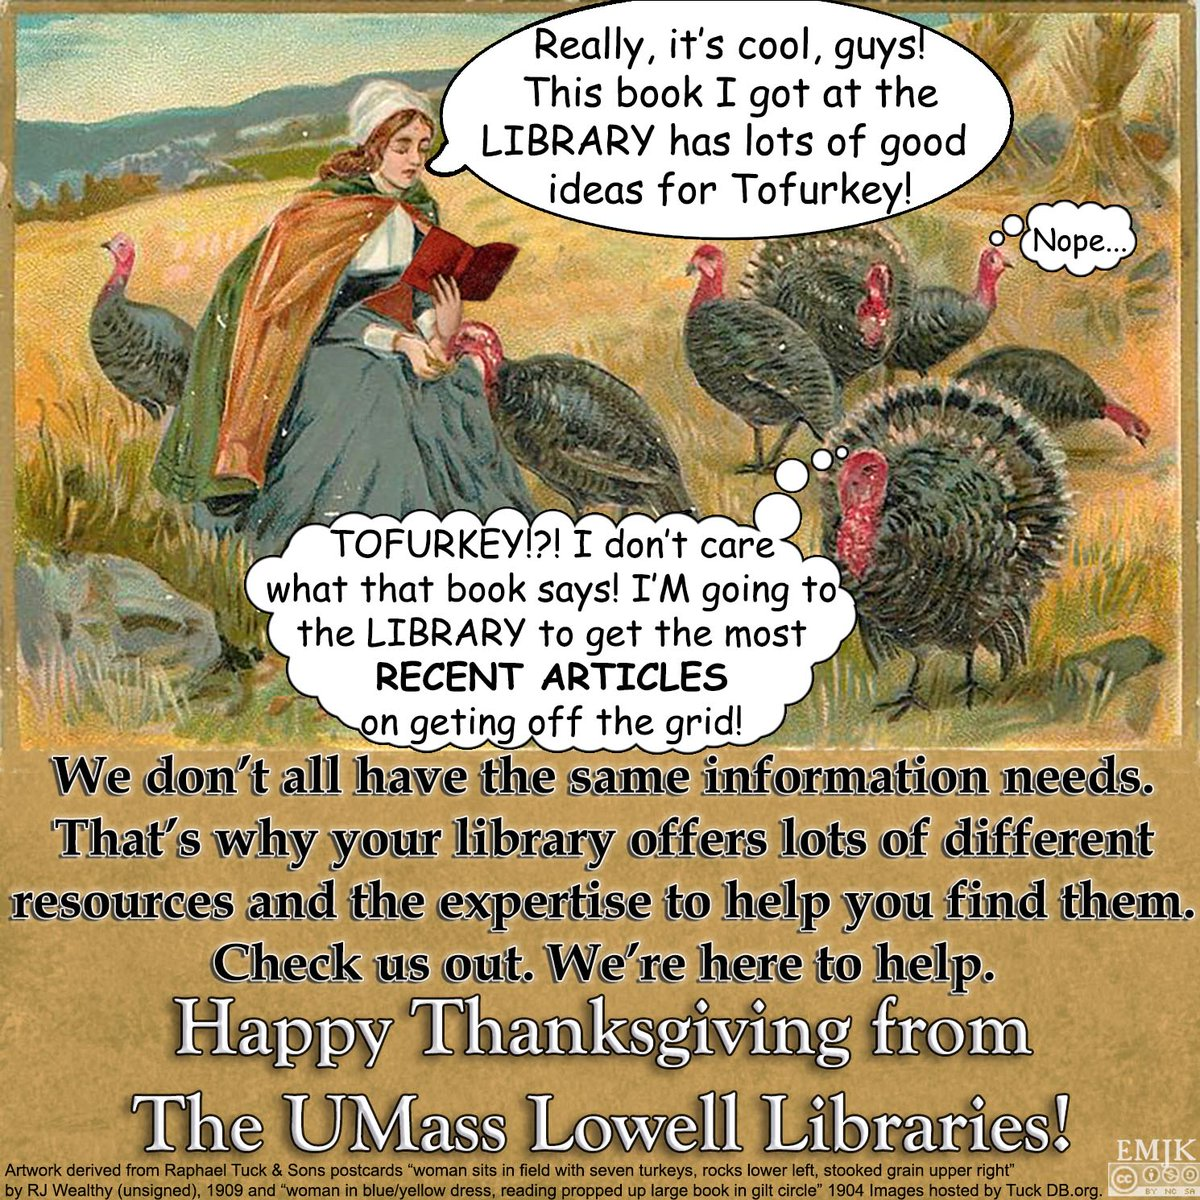 Whether you&#39;re looking for inspiration for a project or want information  to solve a problem, we&#39;re here to help you find the resources you need  in the formats you want. Check us out! #Libraries #AcademicLibraries #UML #UMassLowell #Thanksgiving #LibrariesOfTwitter<br>http://pic.twitter.com/MBoaM3aHNO